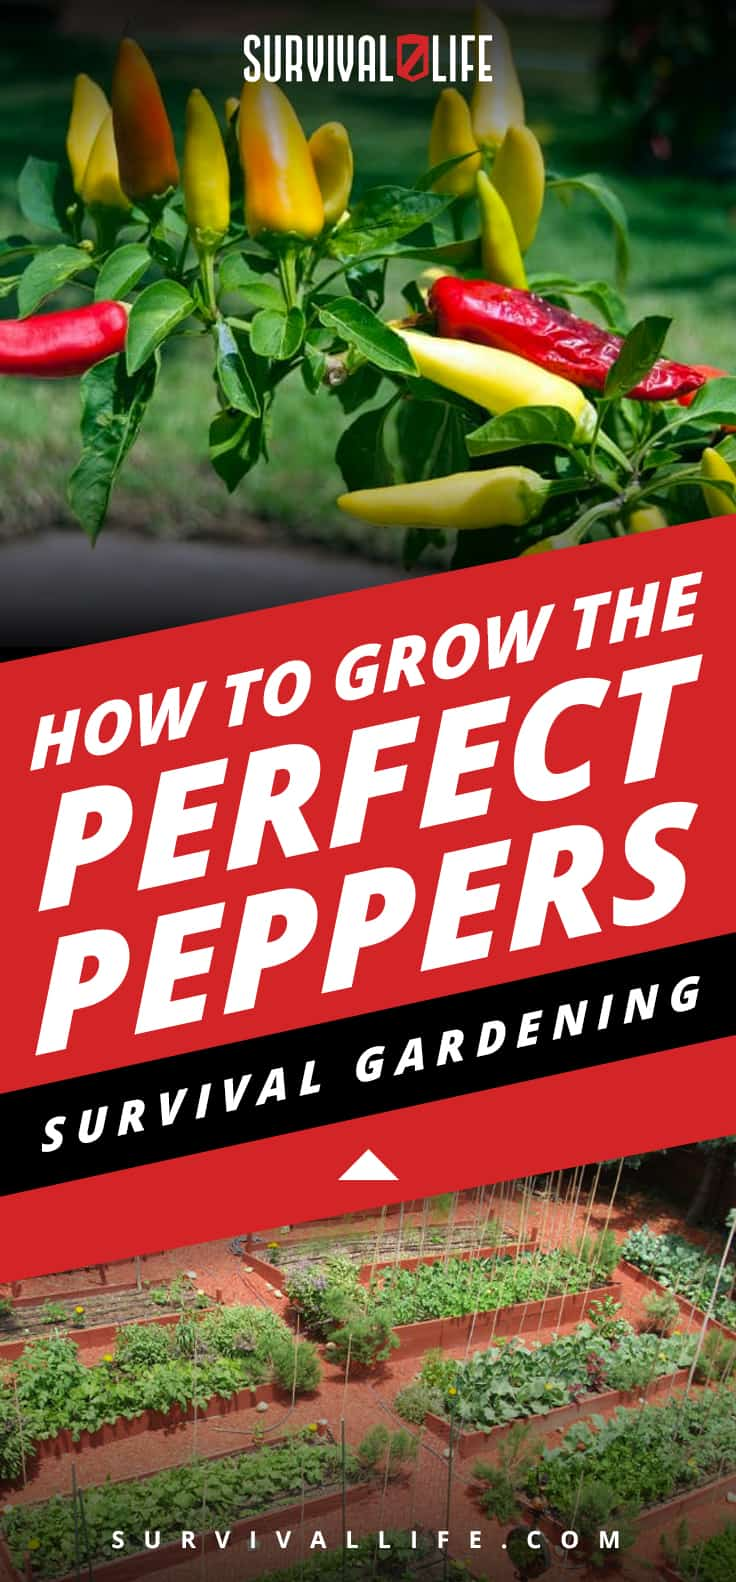 How To Grow The Perfect Peppers: Survival Gardening